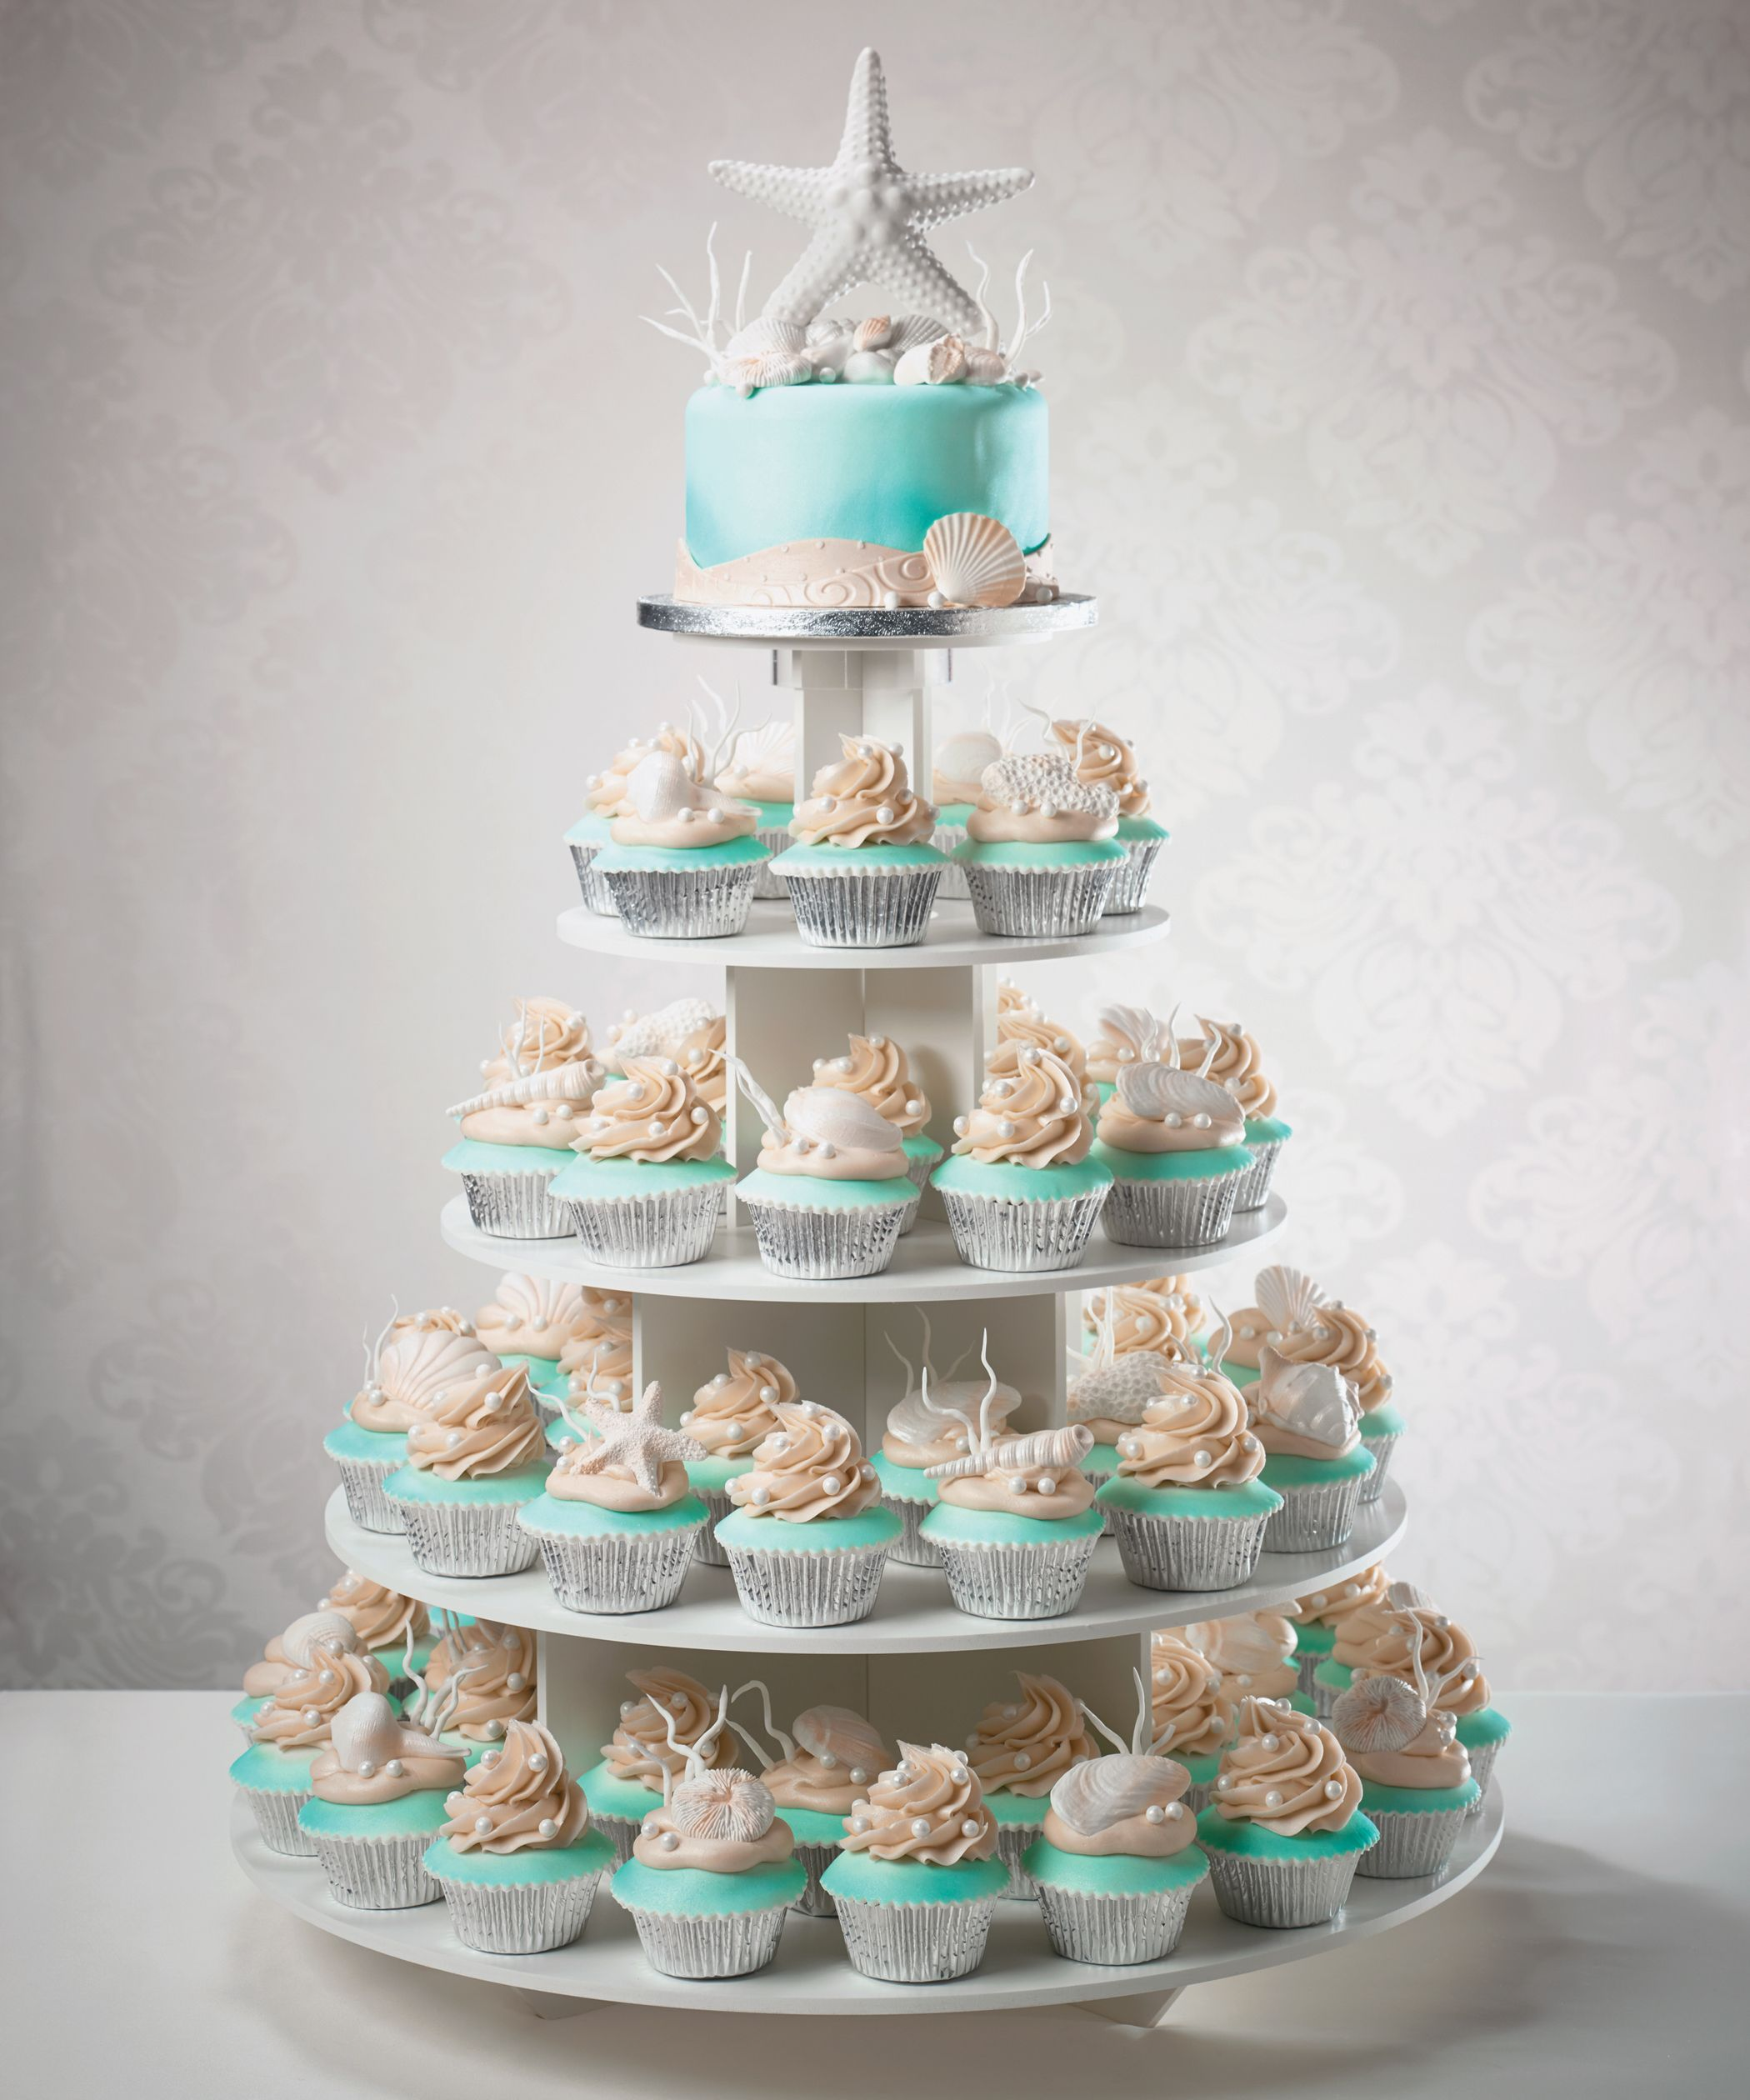 Cupcake Ideas For Wedding: Wedding Cake And Cupcake Tower For A Beach Destination